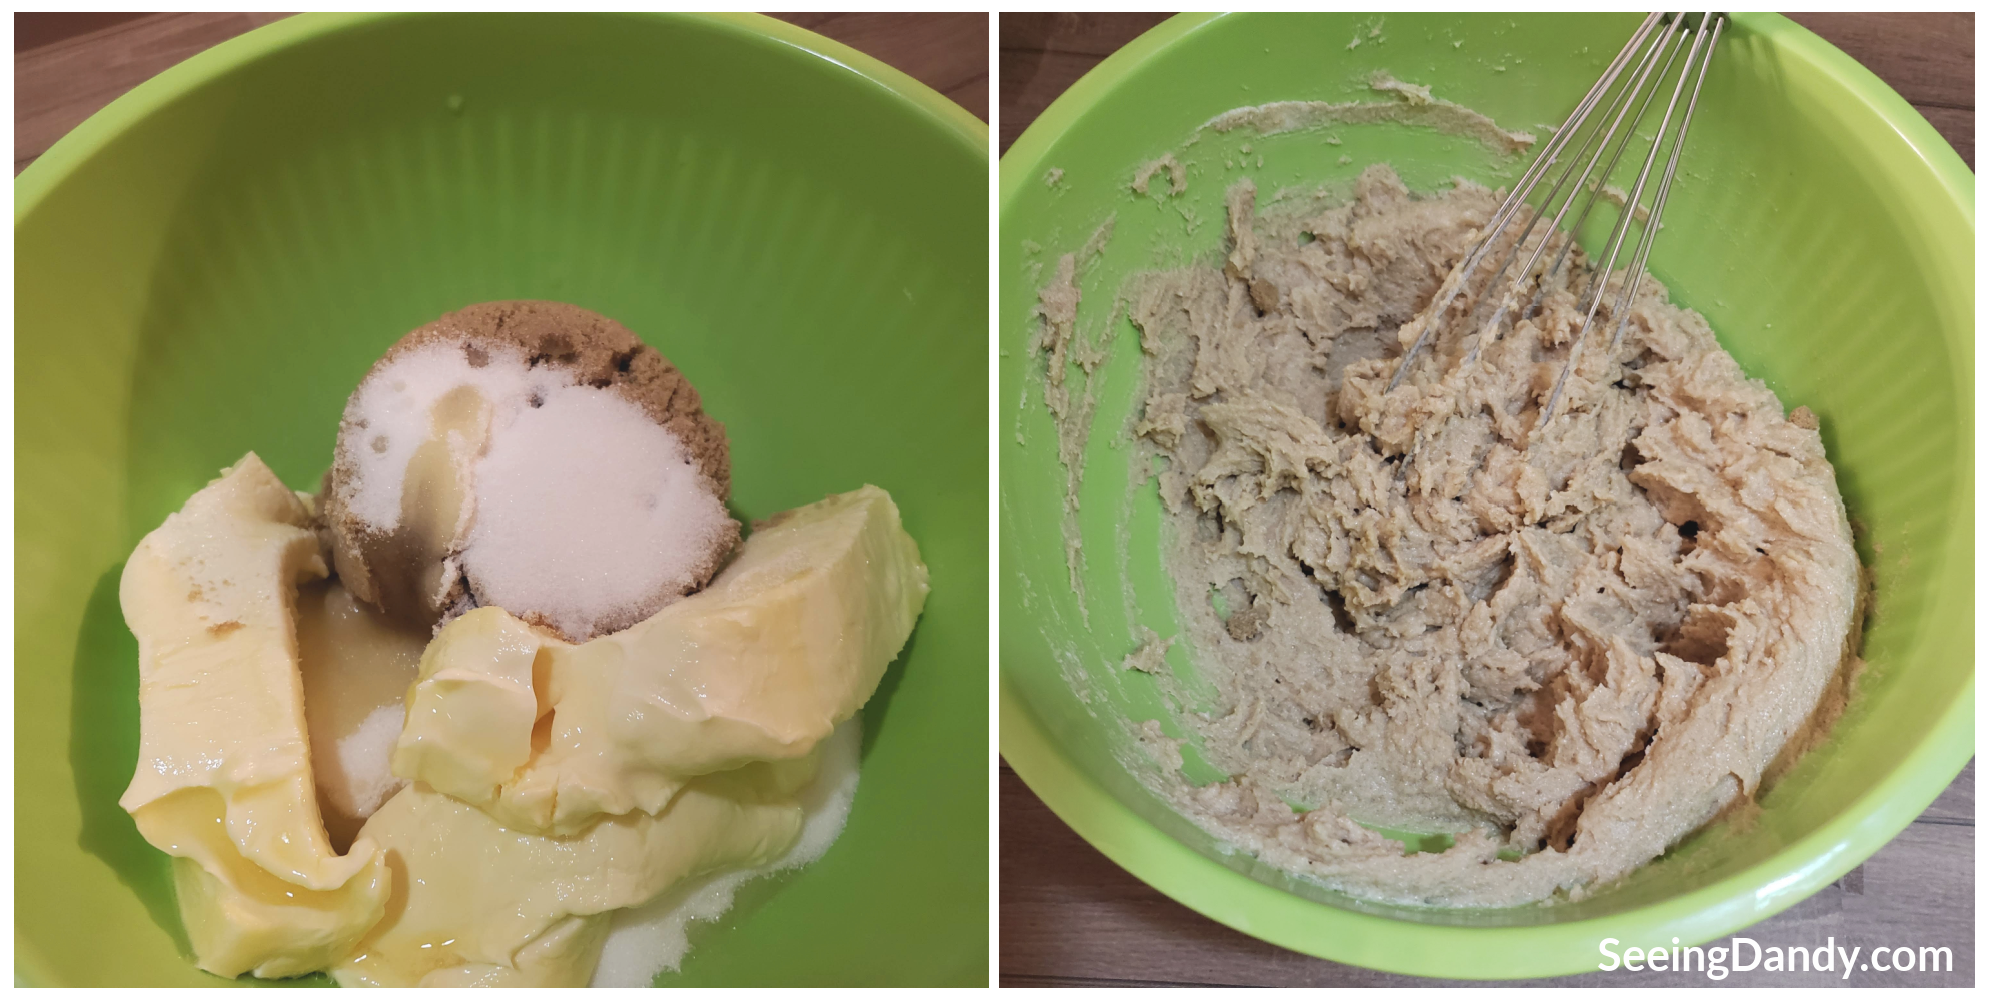 mixing cookie recipe, sugar, brown sugar, butter, whisk, green bowel